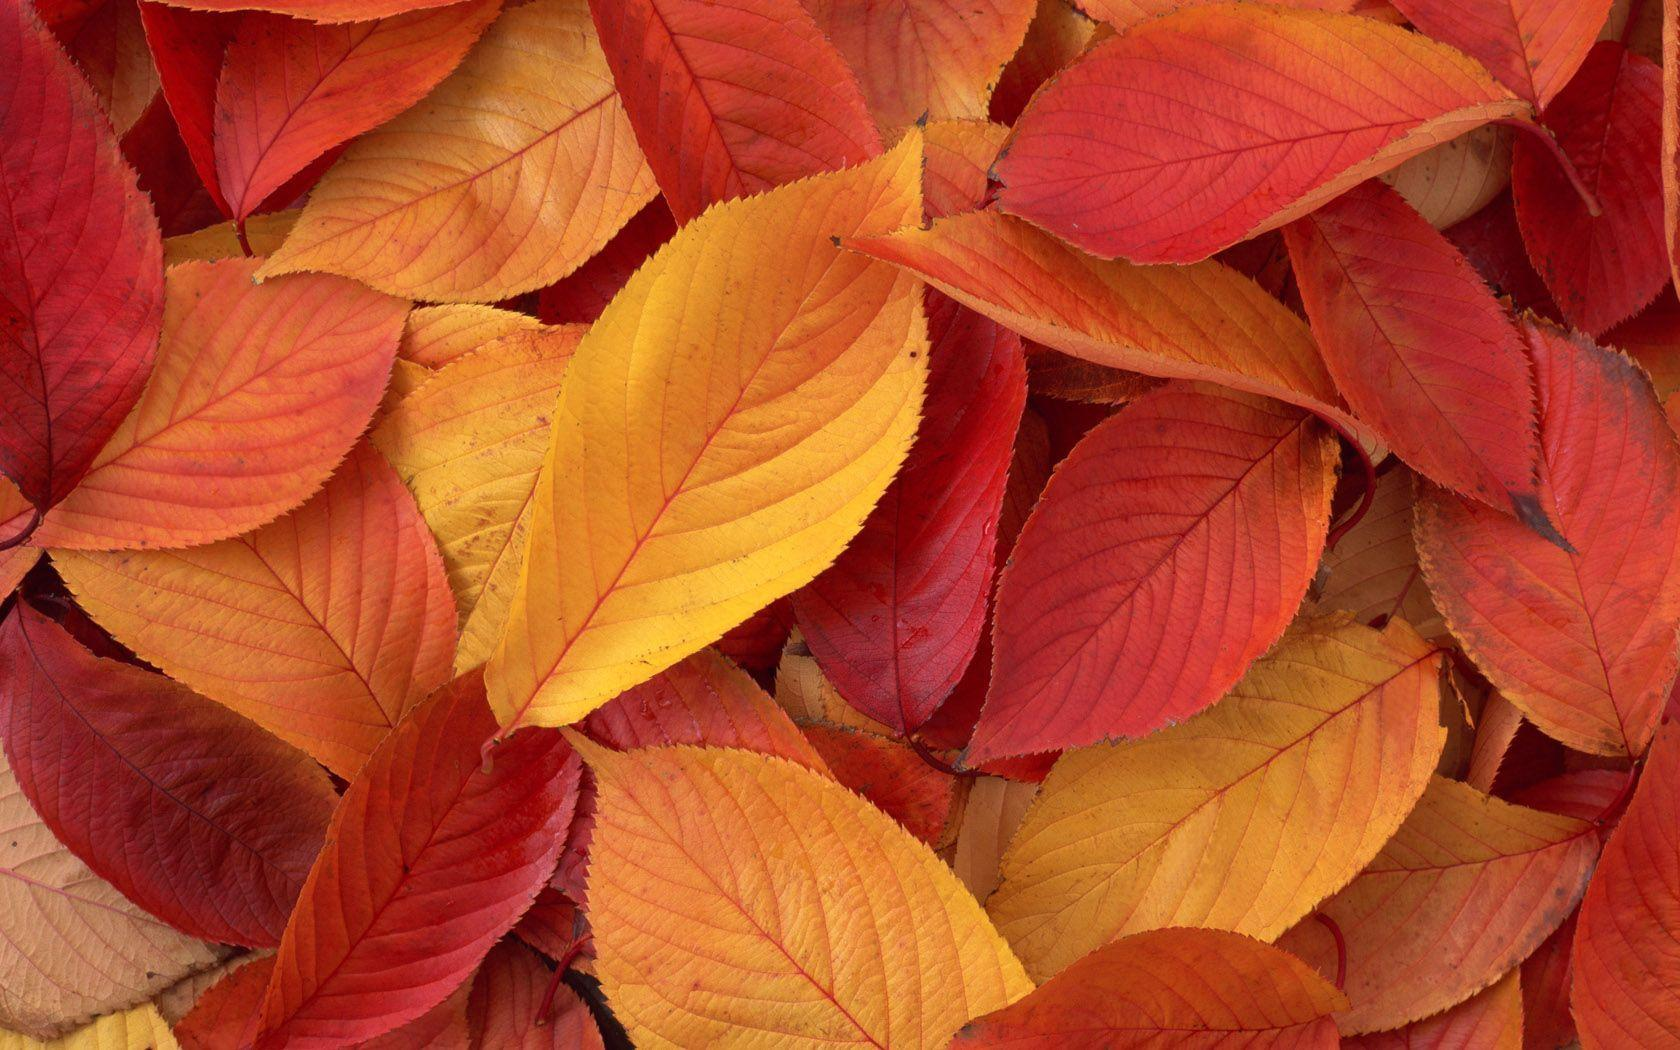 leaf background wallpaper - photo #40